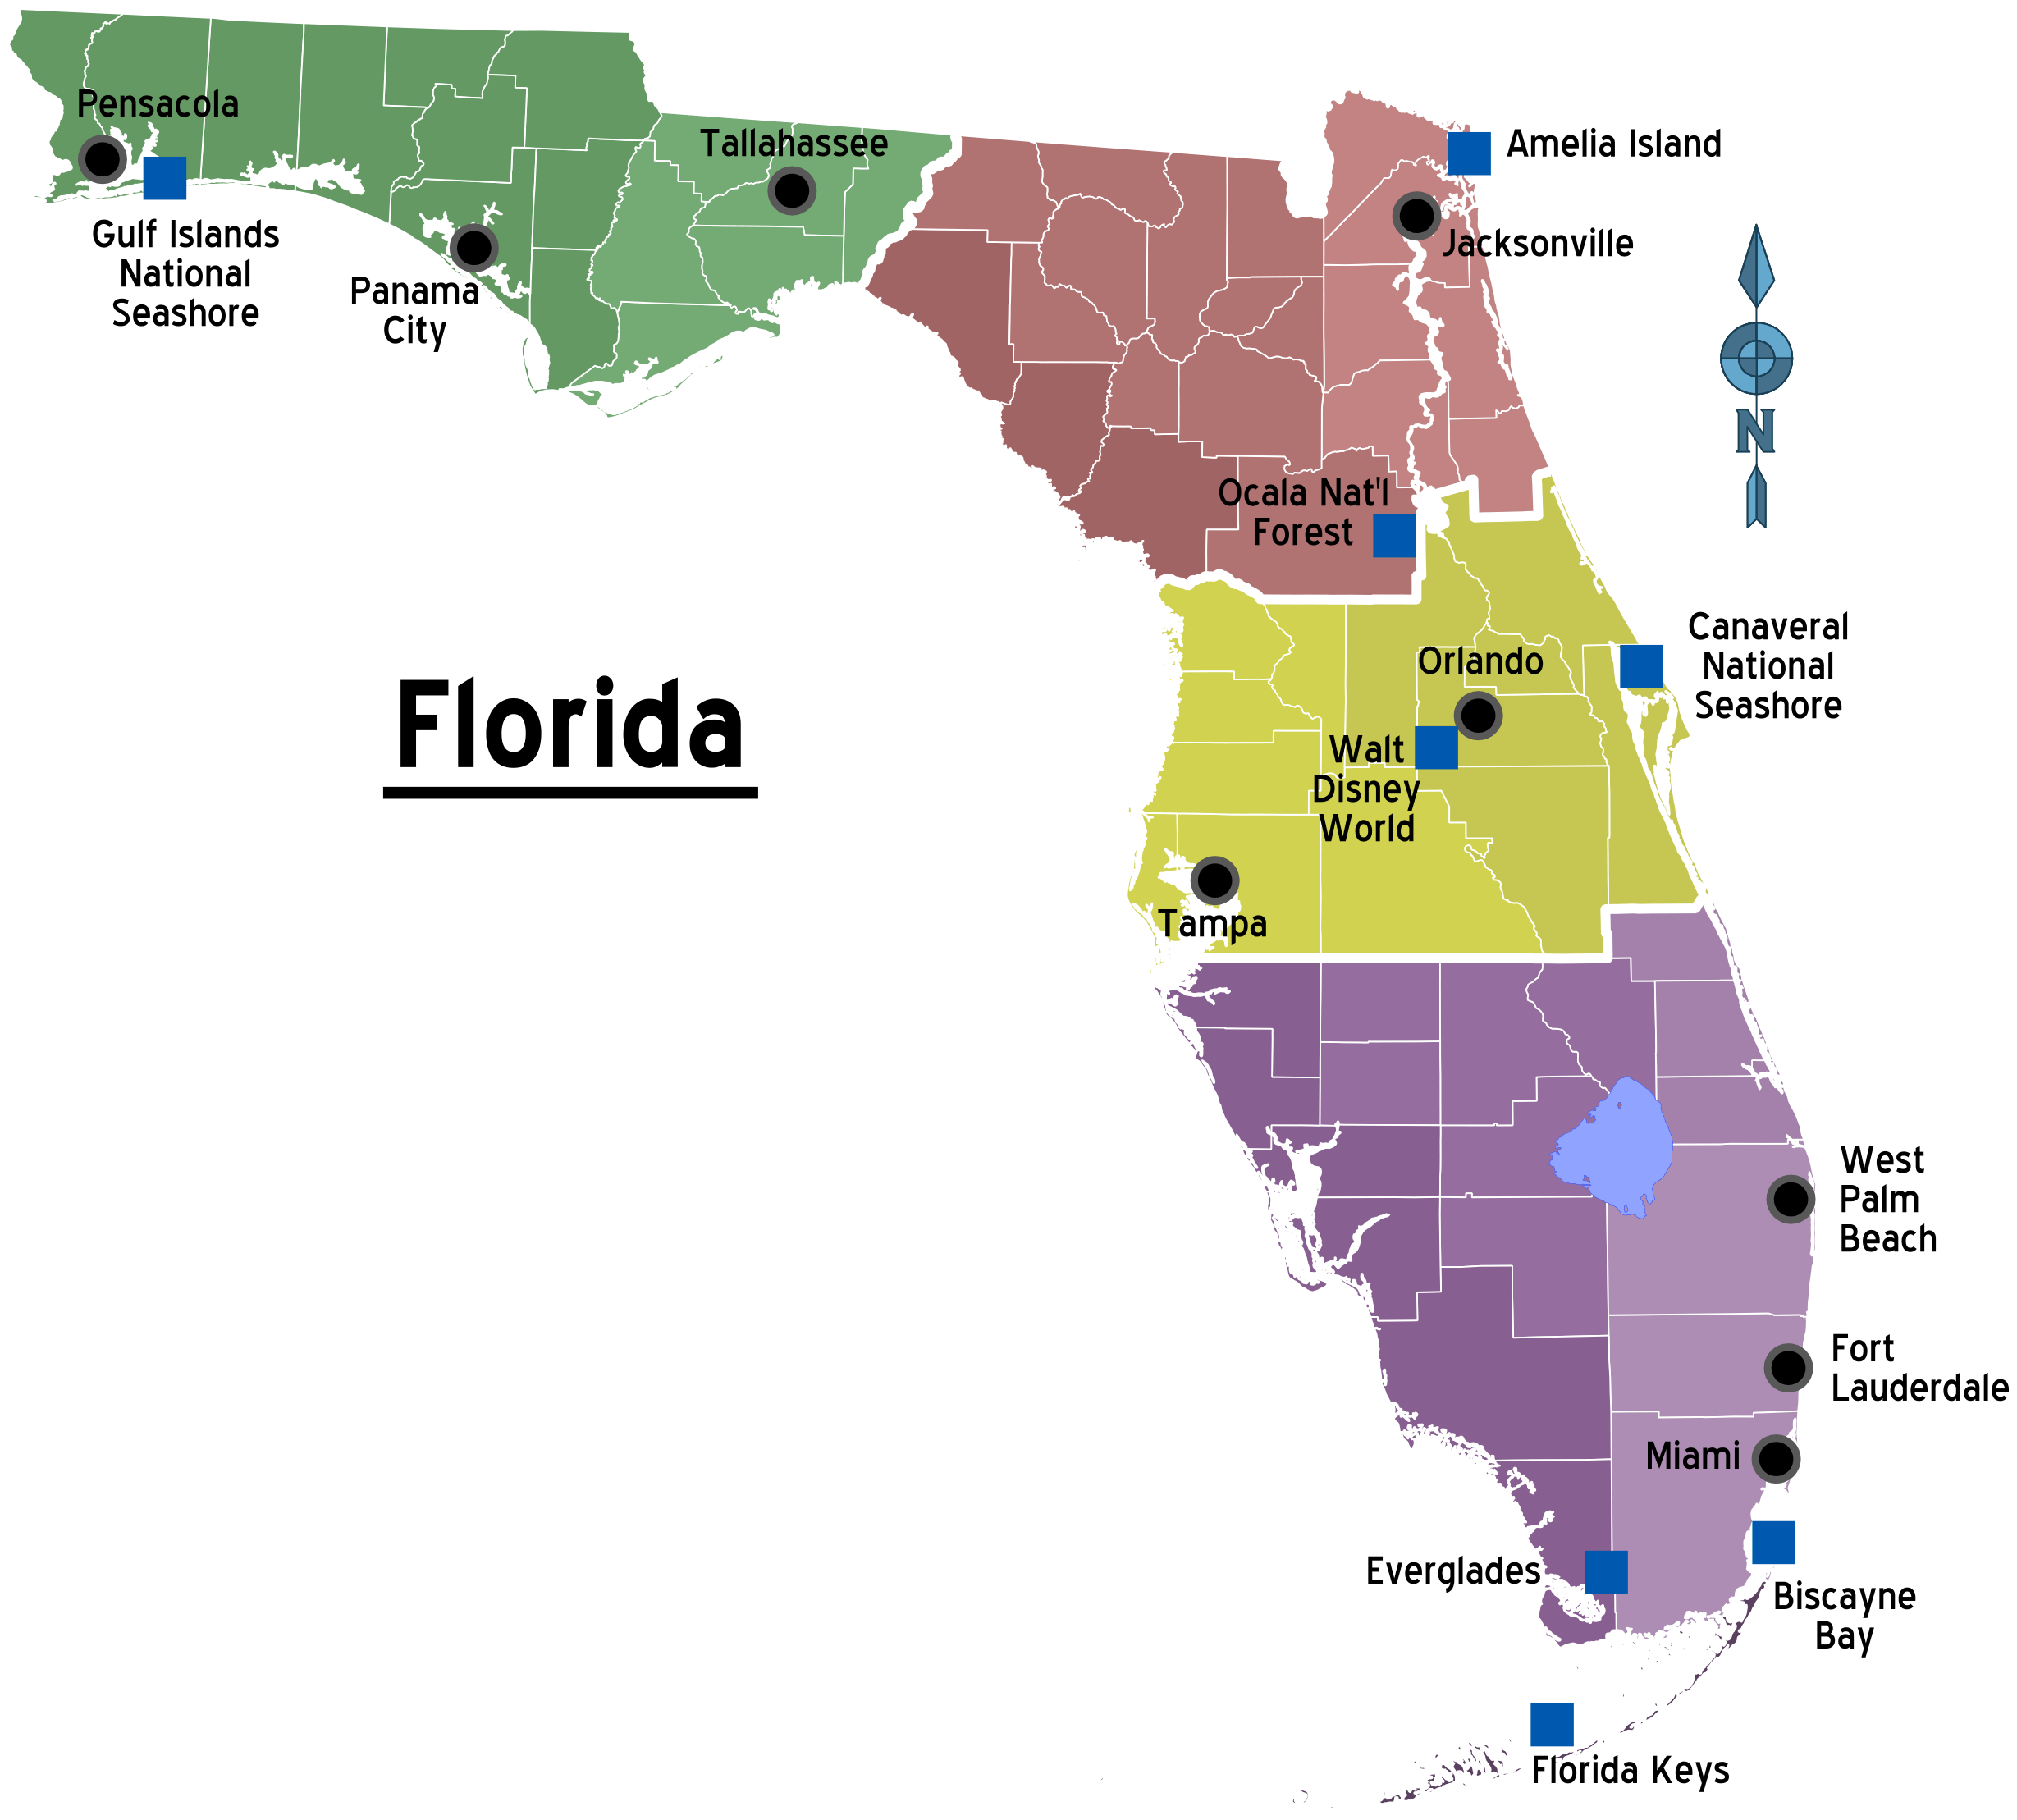 Florida Regions Map With Cities large map